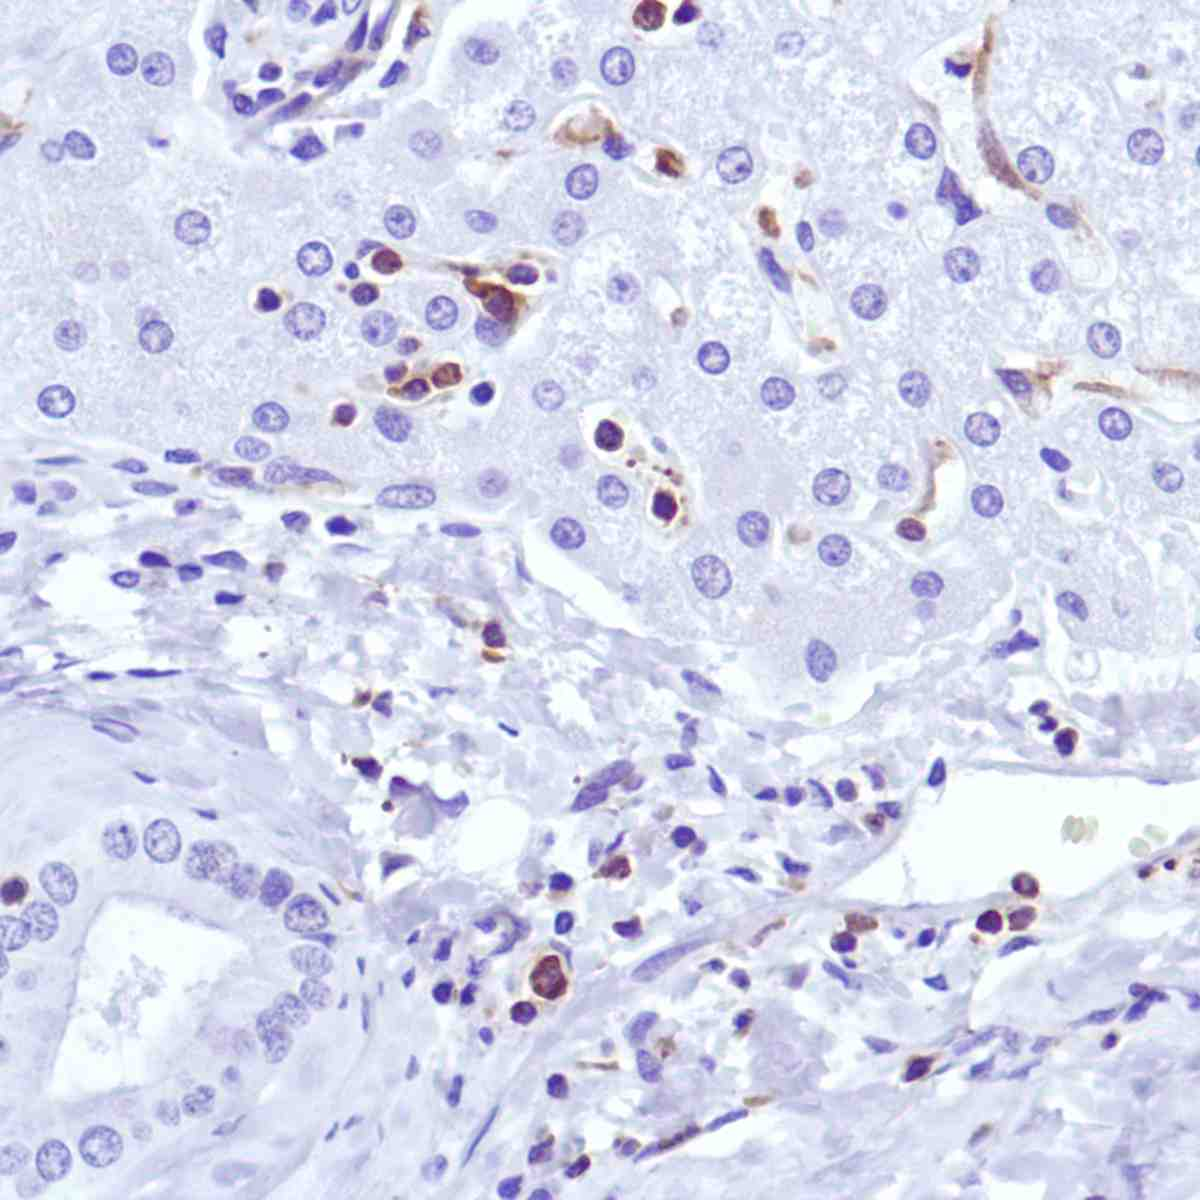 Human Liver stained with anti-CSF-1R antibody